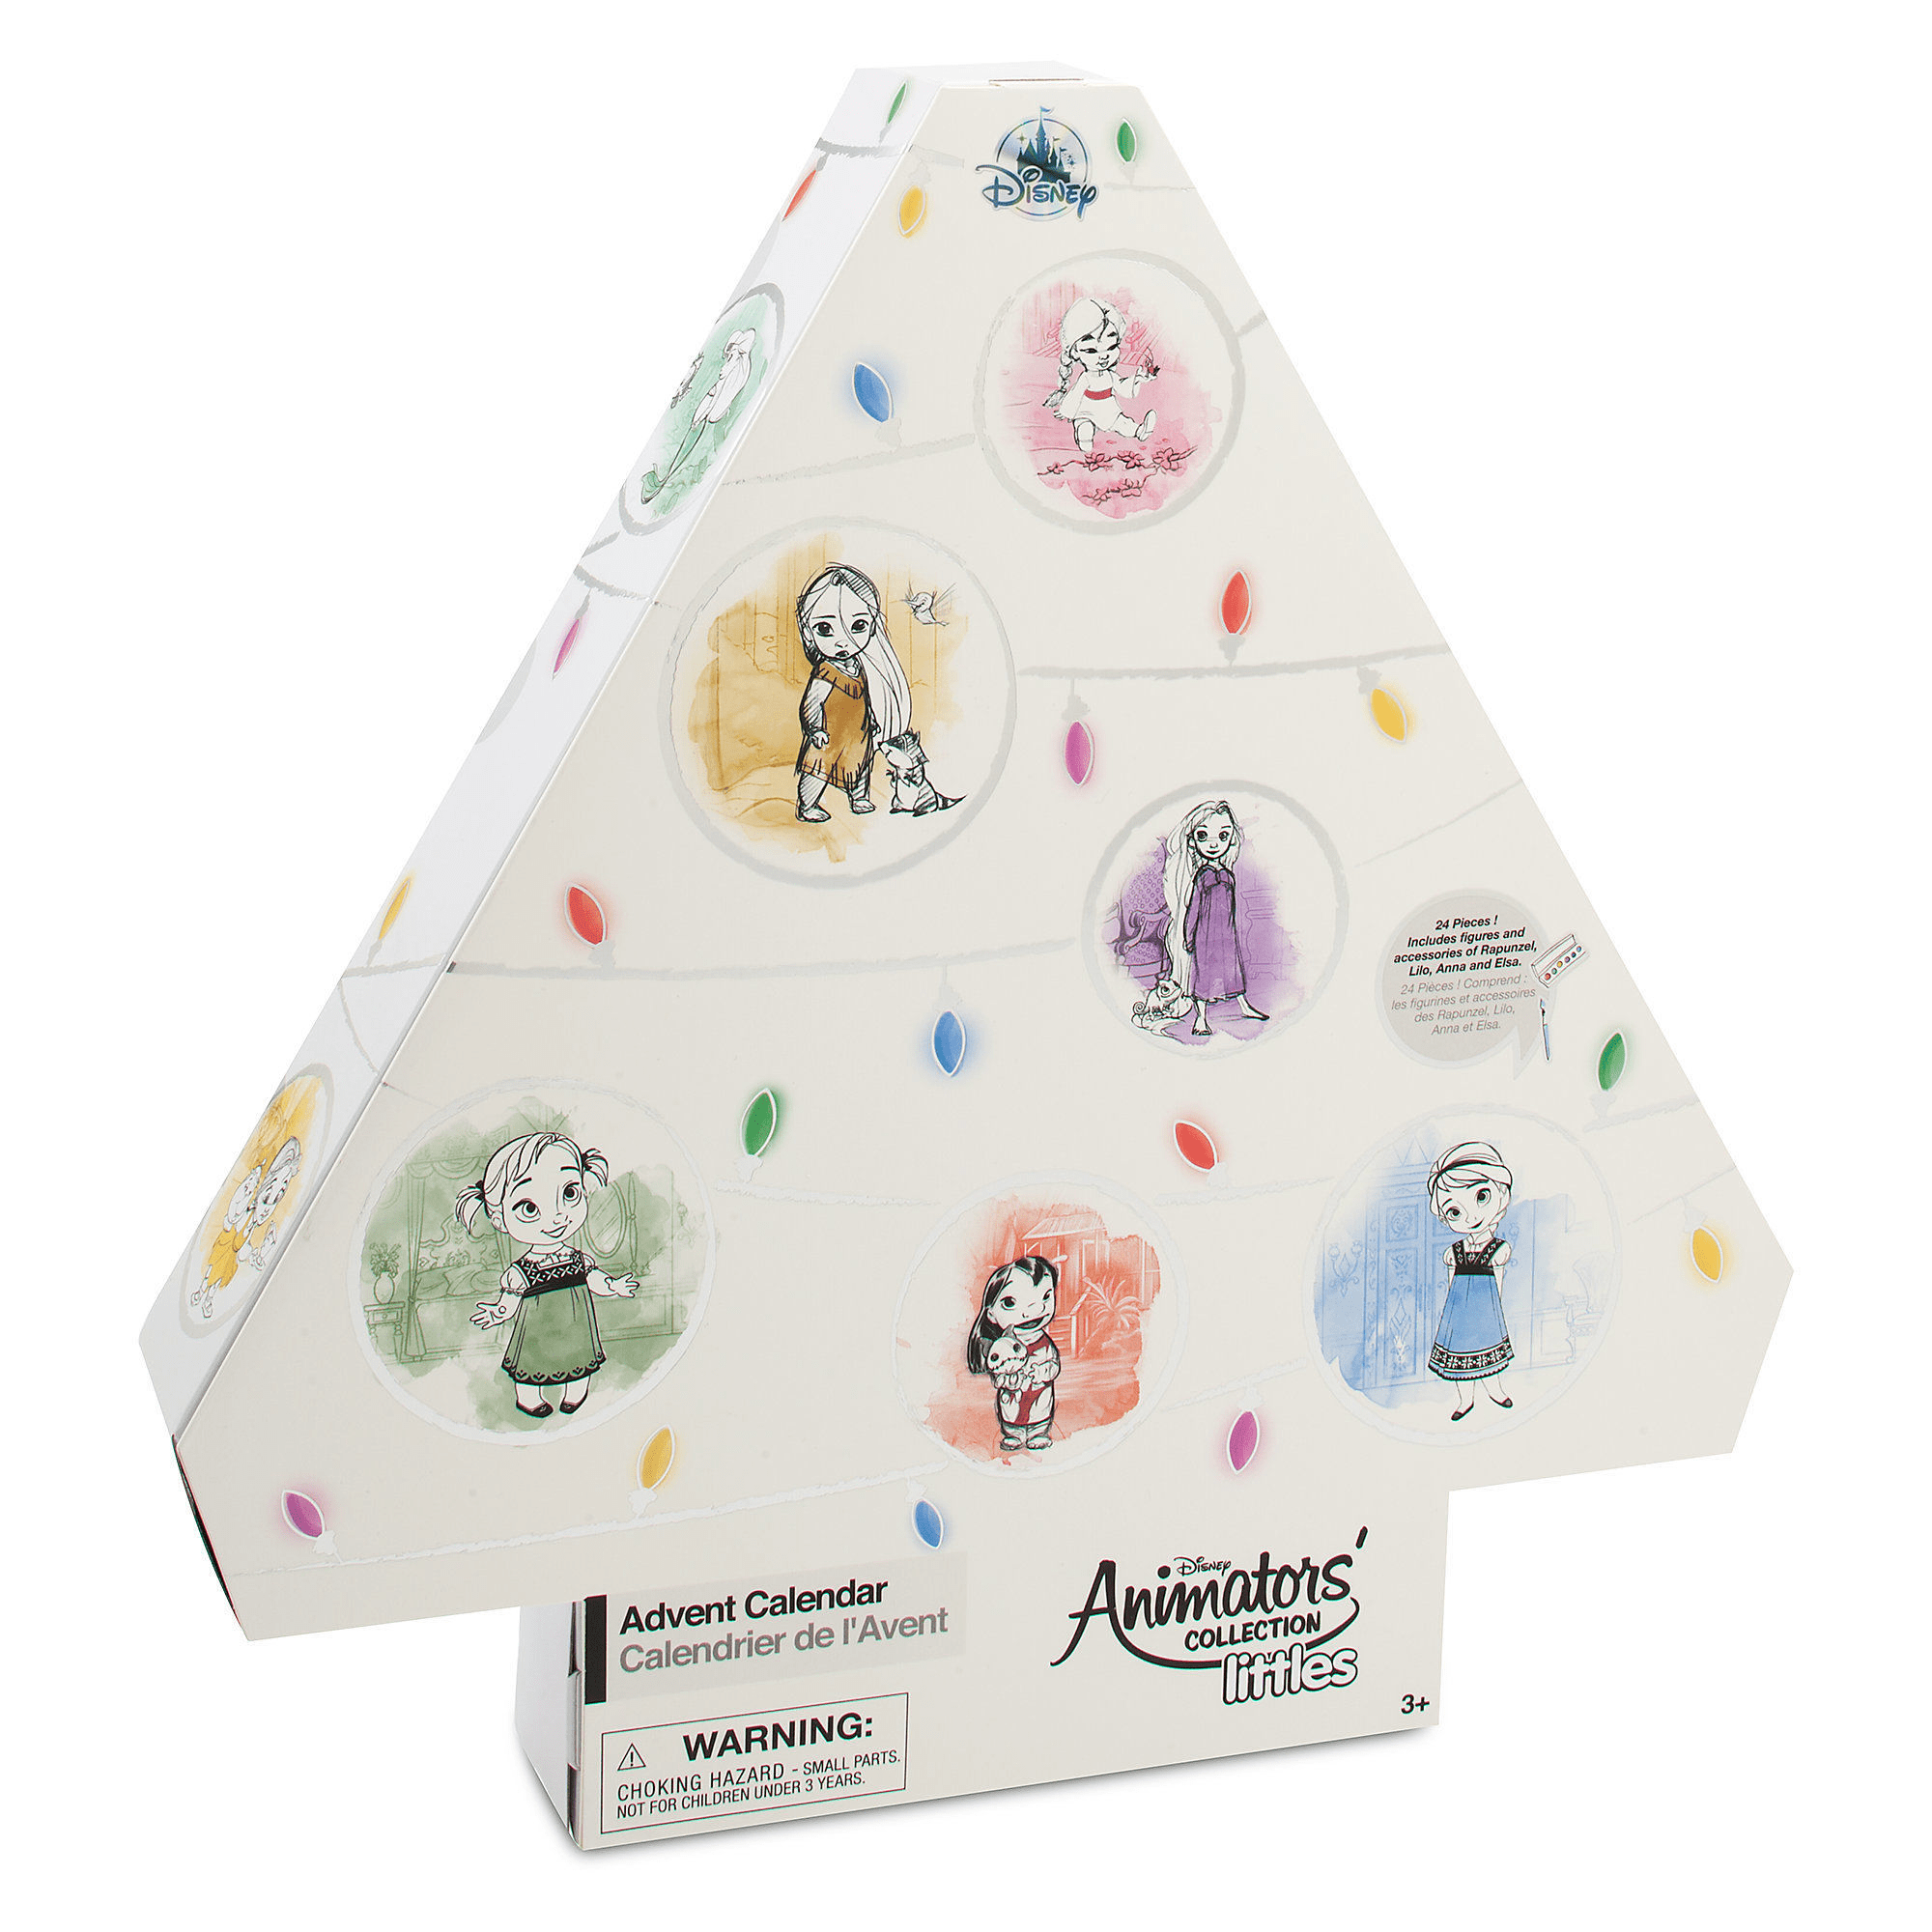 2018 Disney Animators Littles Advent Calendar Available Now + Full Spoilers!